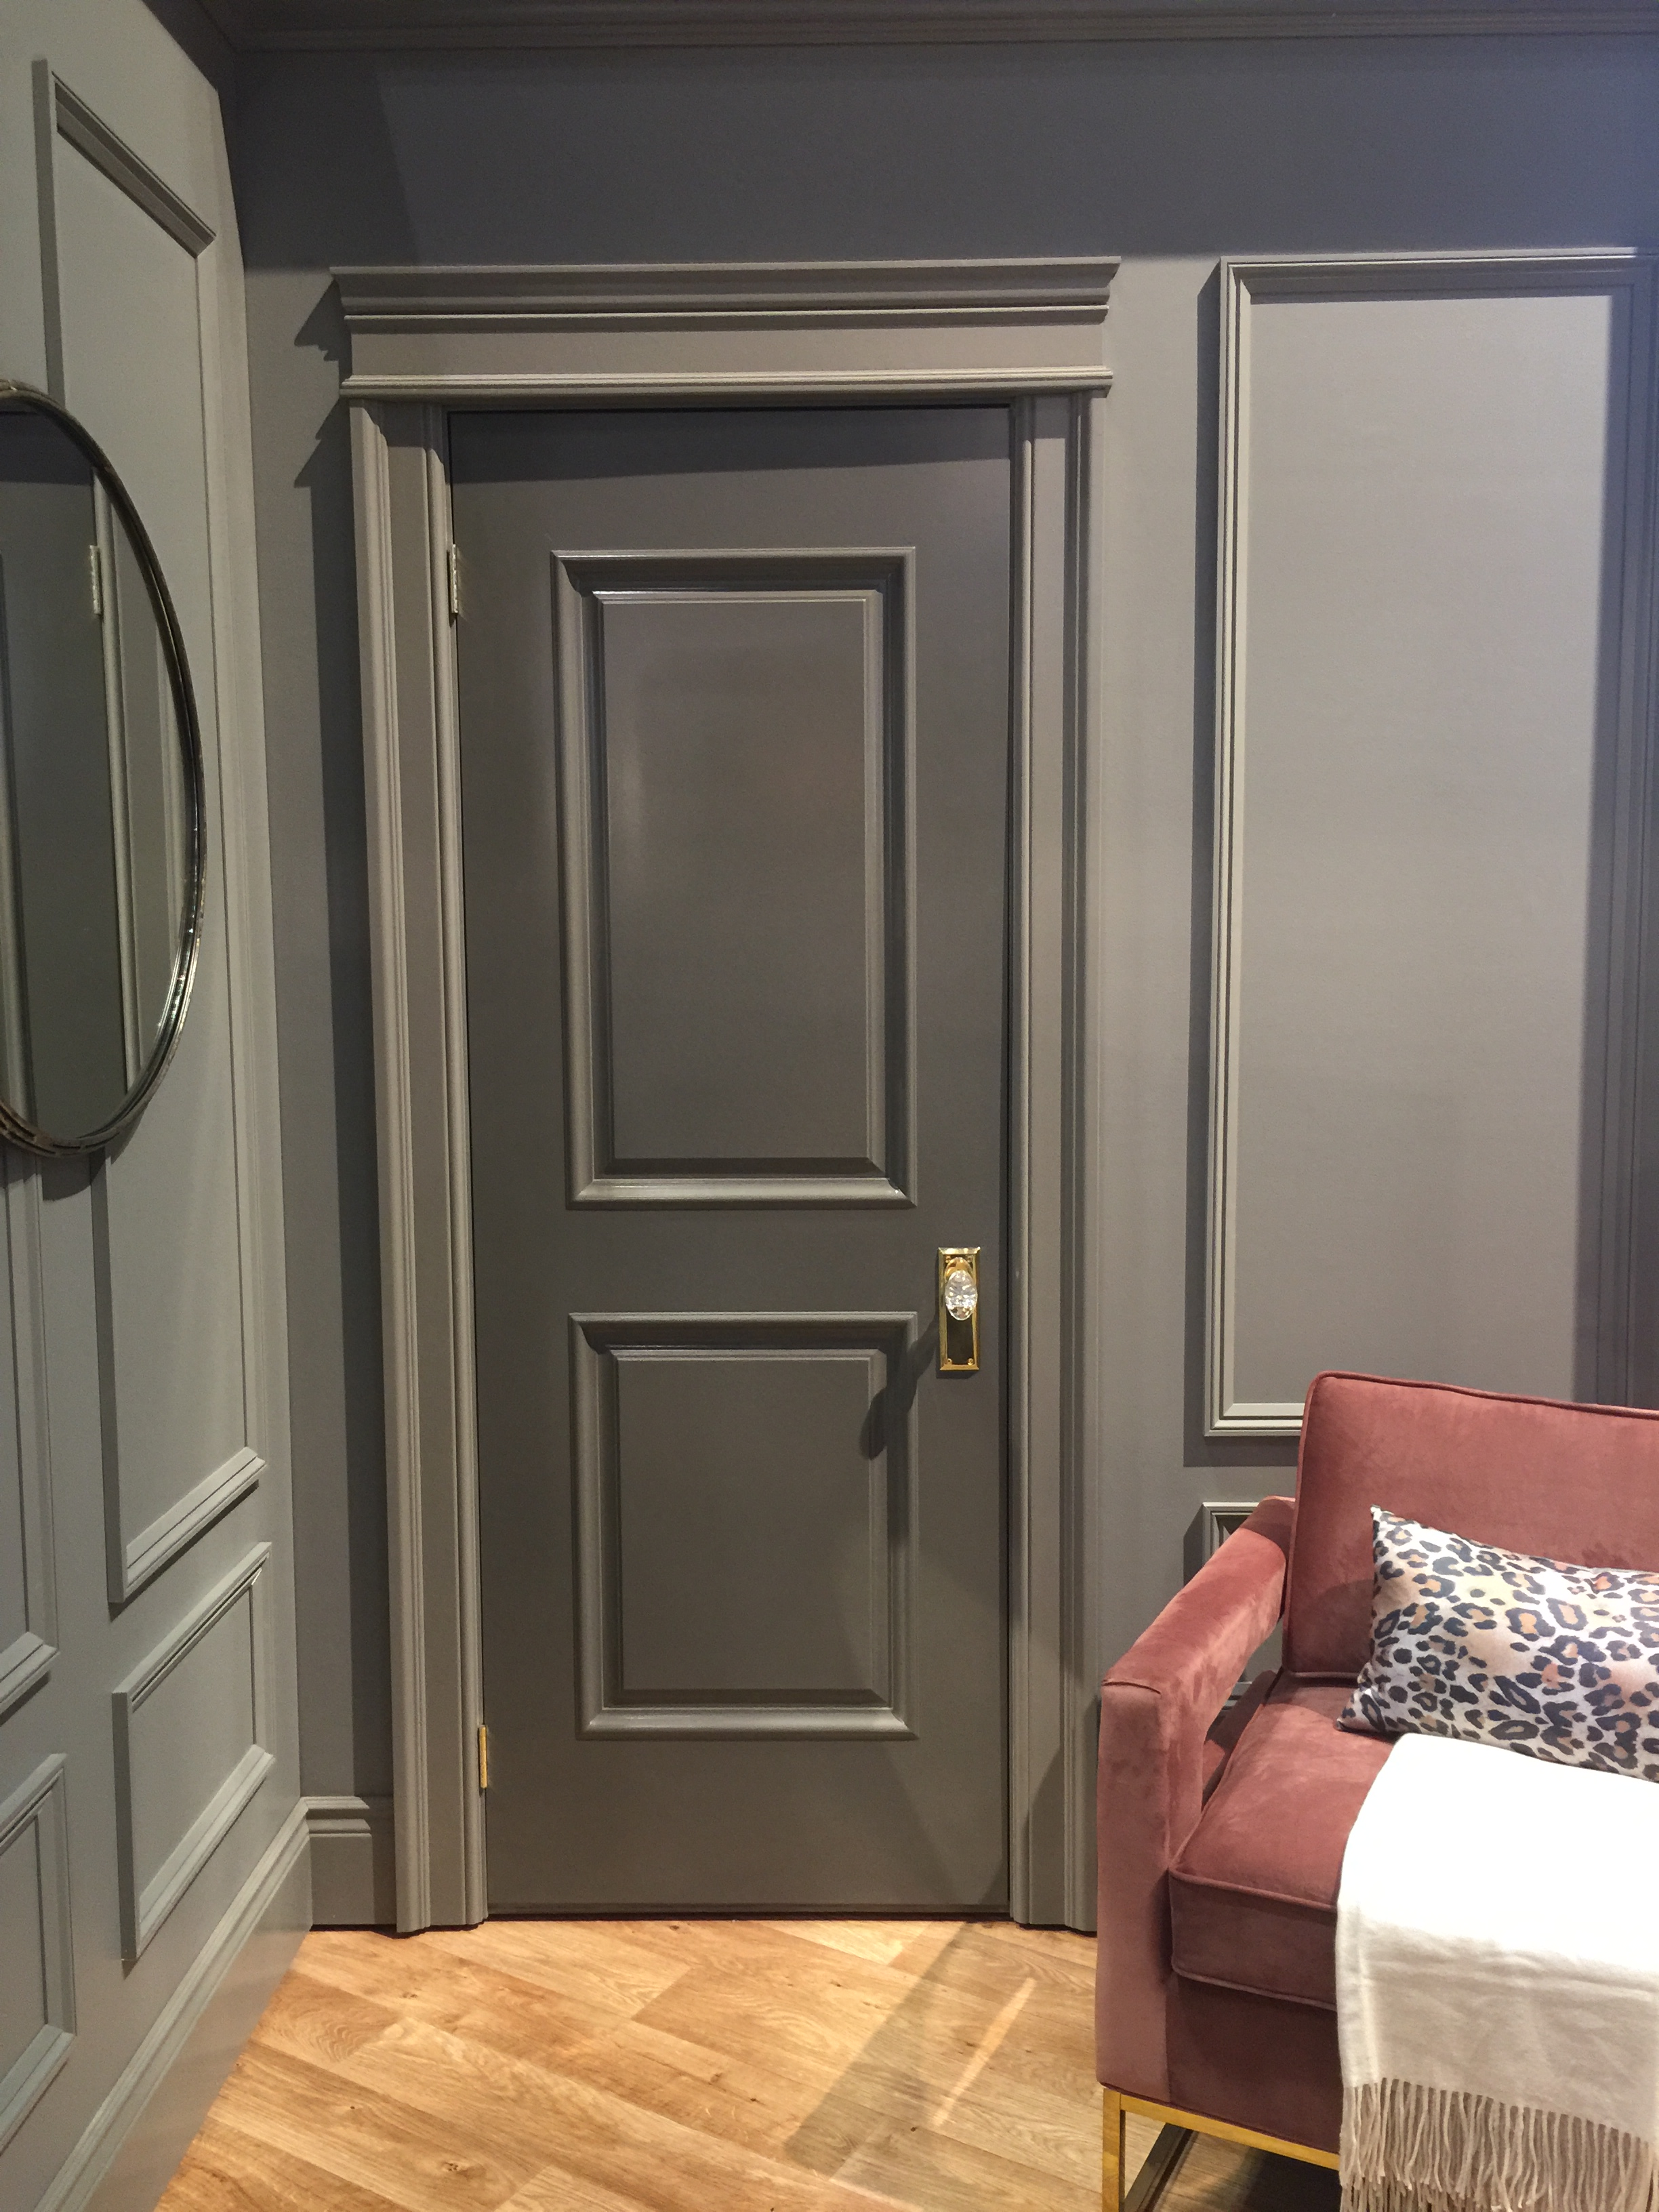 The New Traditional style has a classic, tailored, and sophisticated look. #mouldings #trim